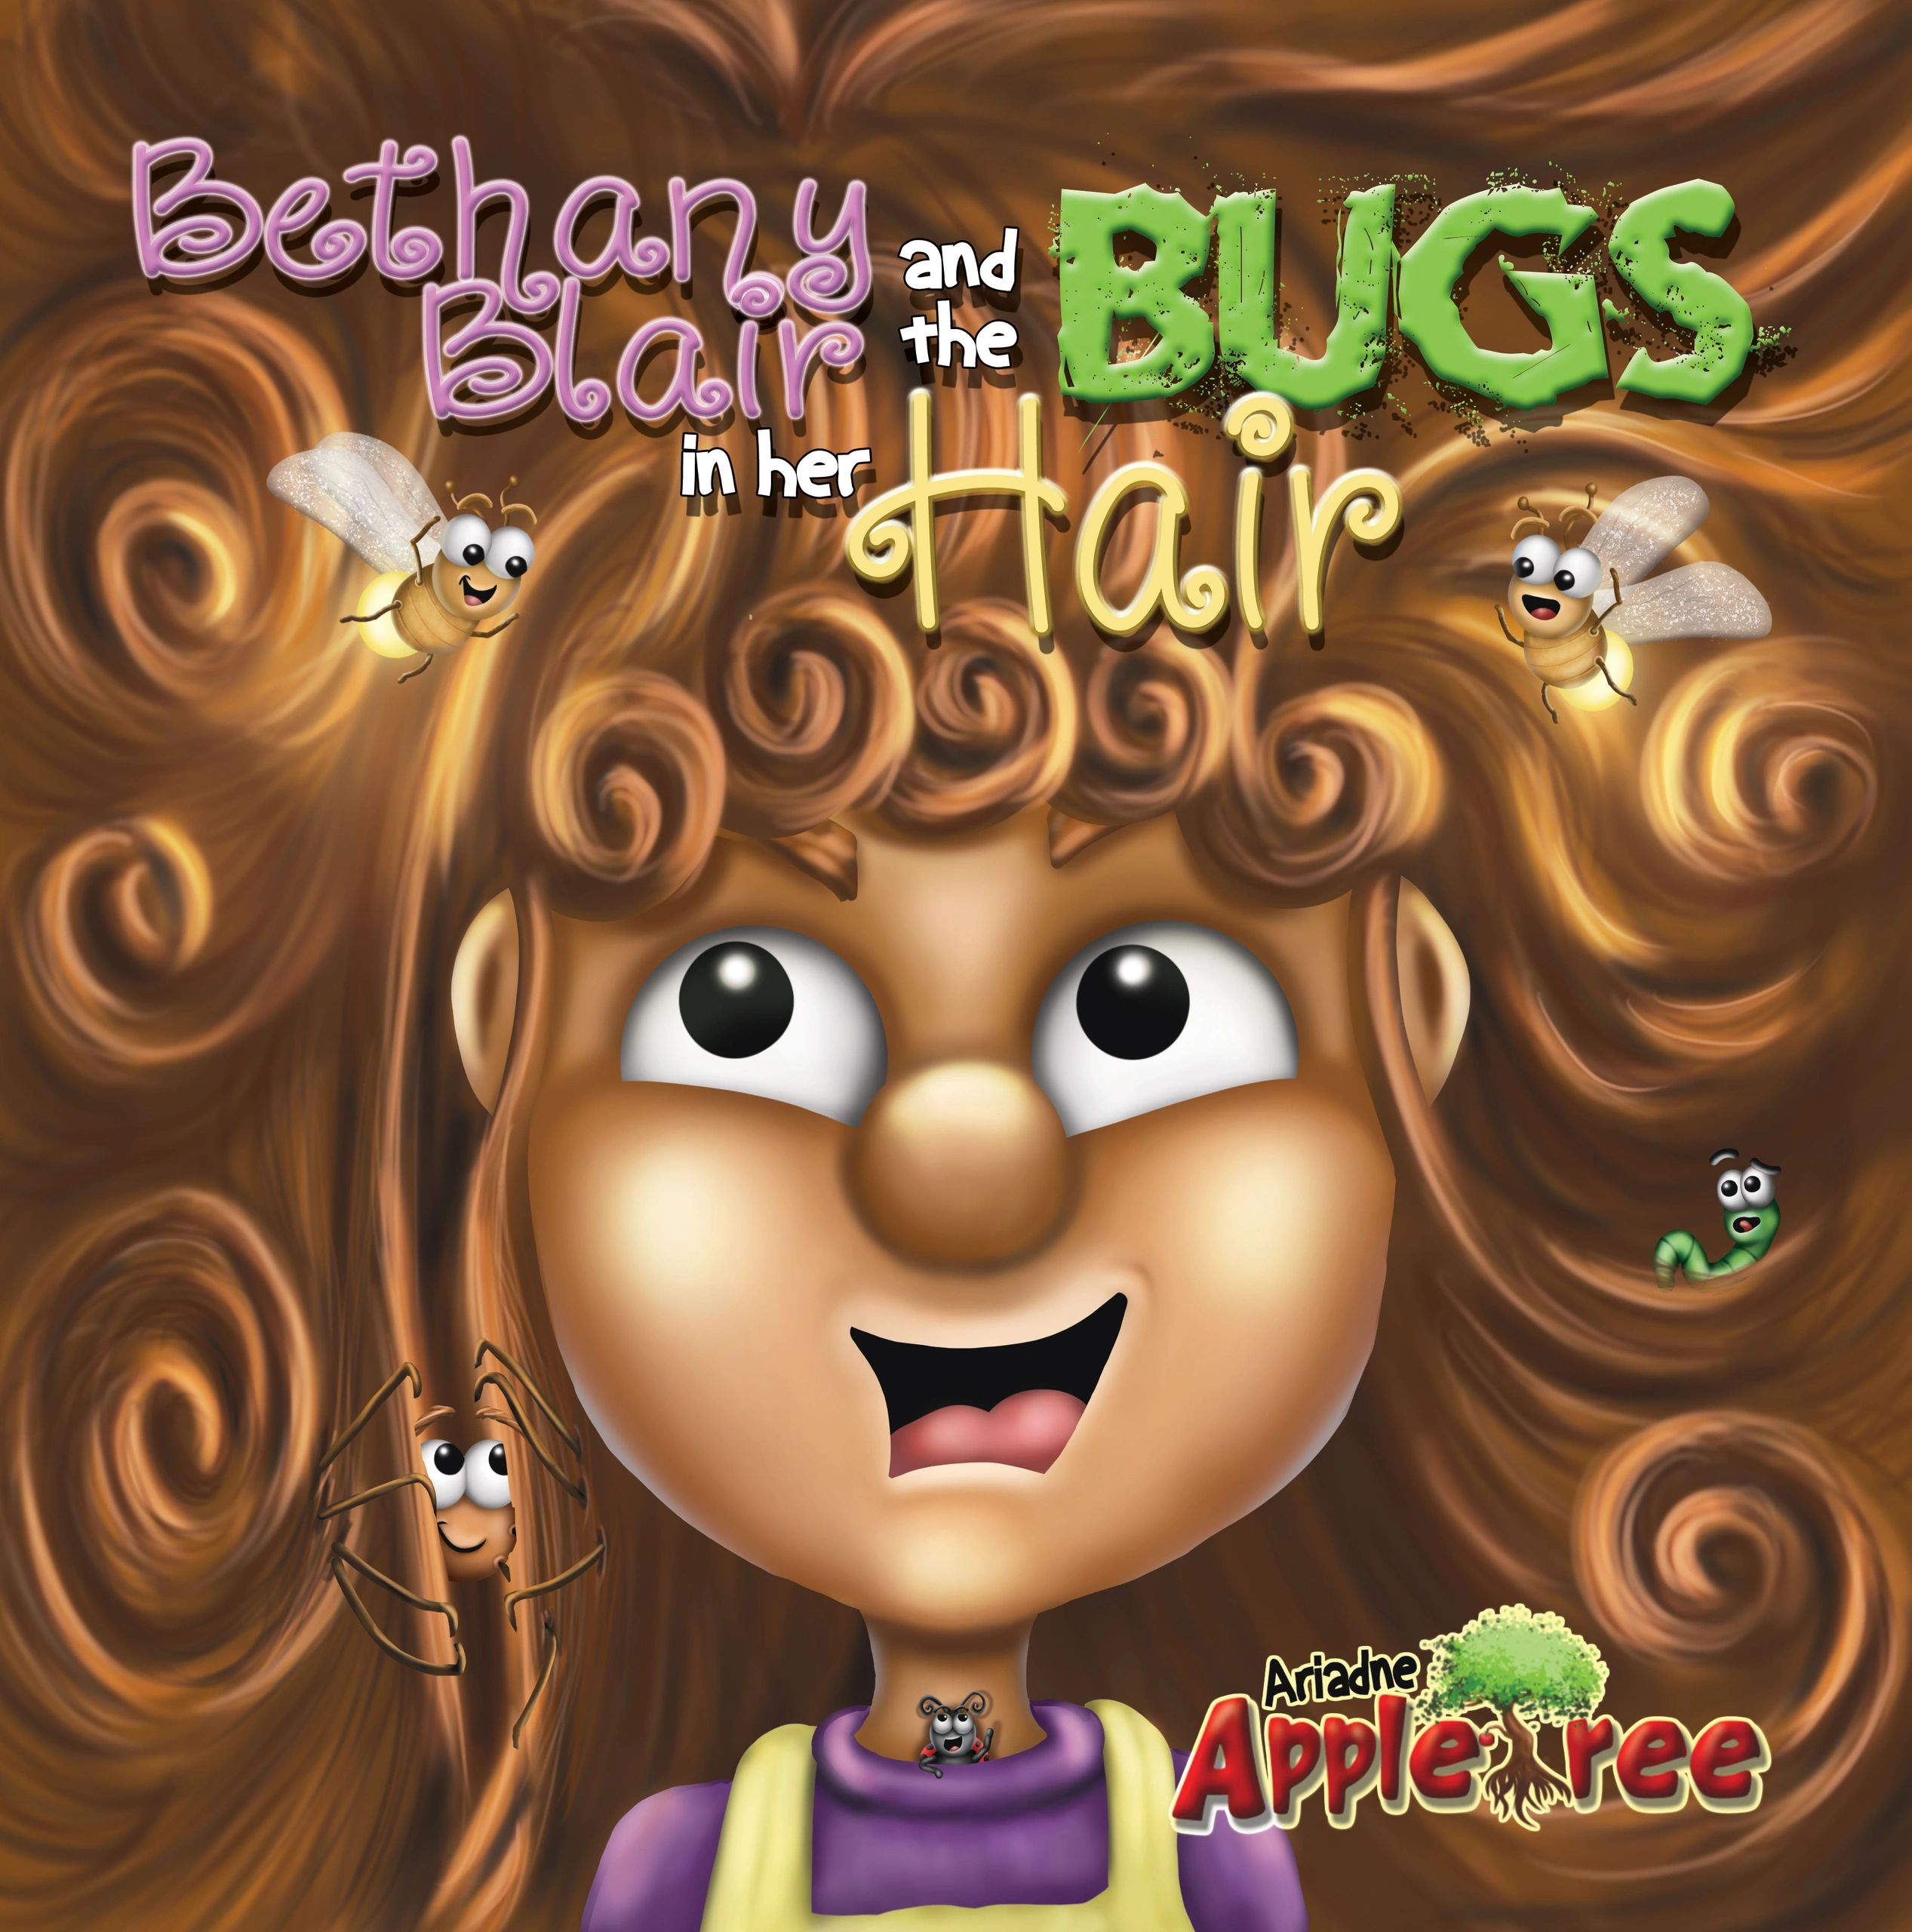 Bethany Blair and the Bugs in her Hair, kids books, fairy tales, spiral fairy tales, ariadne appletree, stories in rhyme, rhyming kids books, cute bugs, bugs